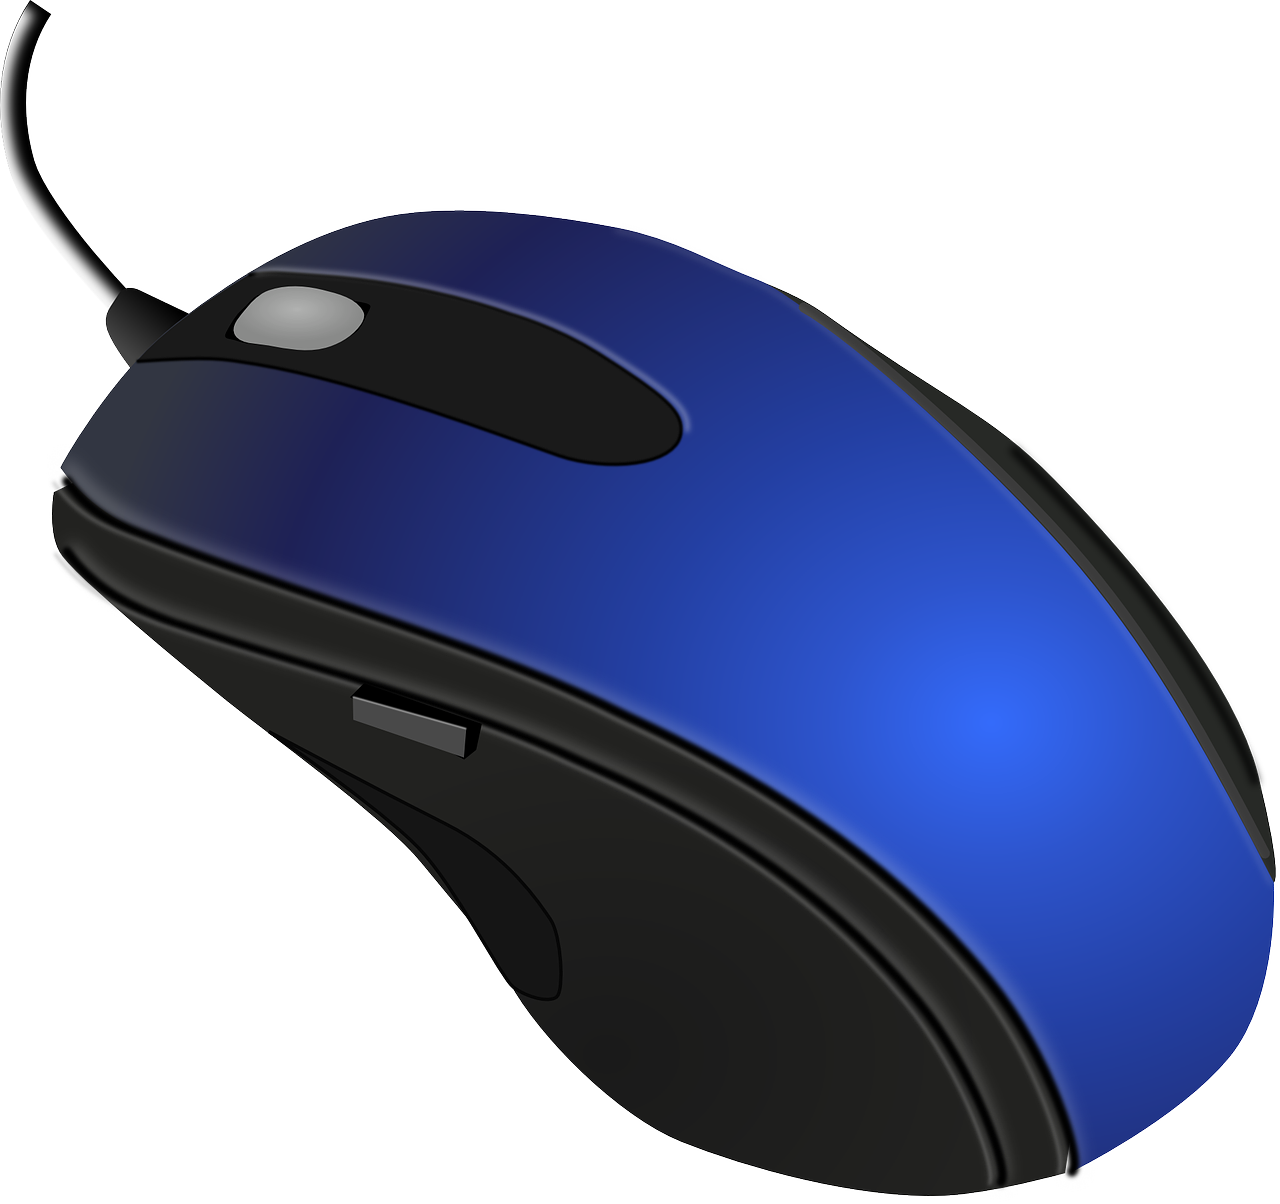 Computer Mouse - Free vector graphic on Pixabay